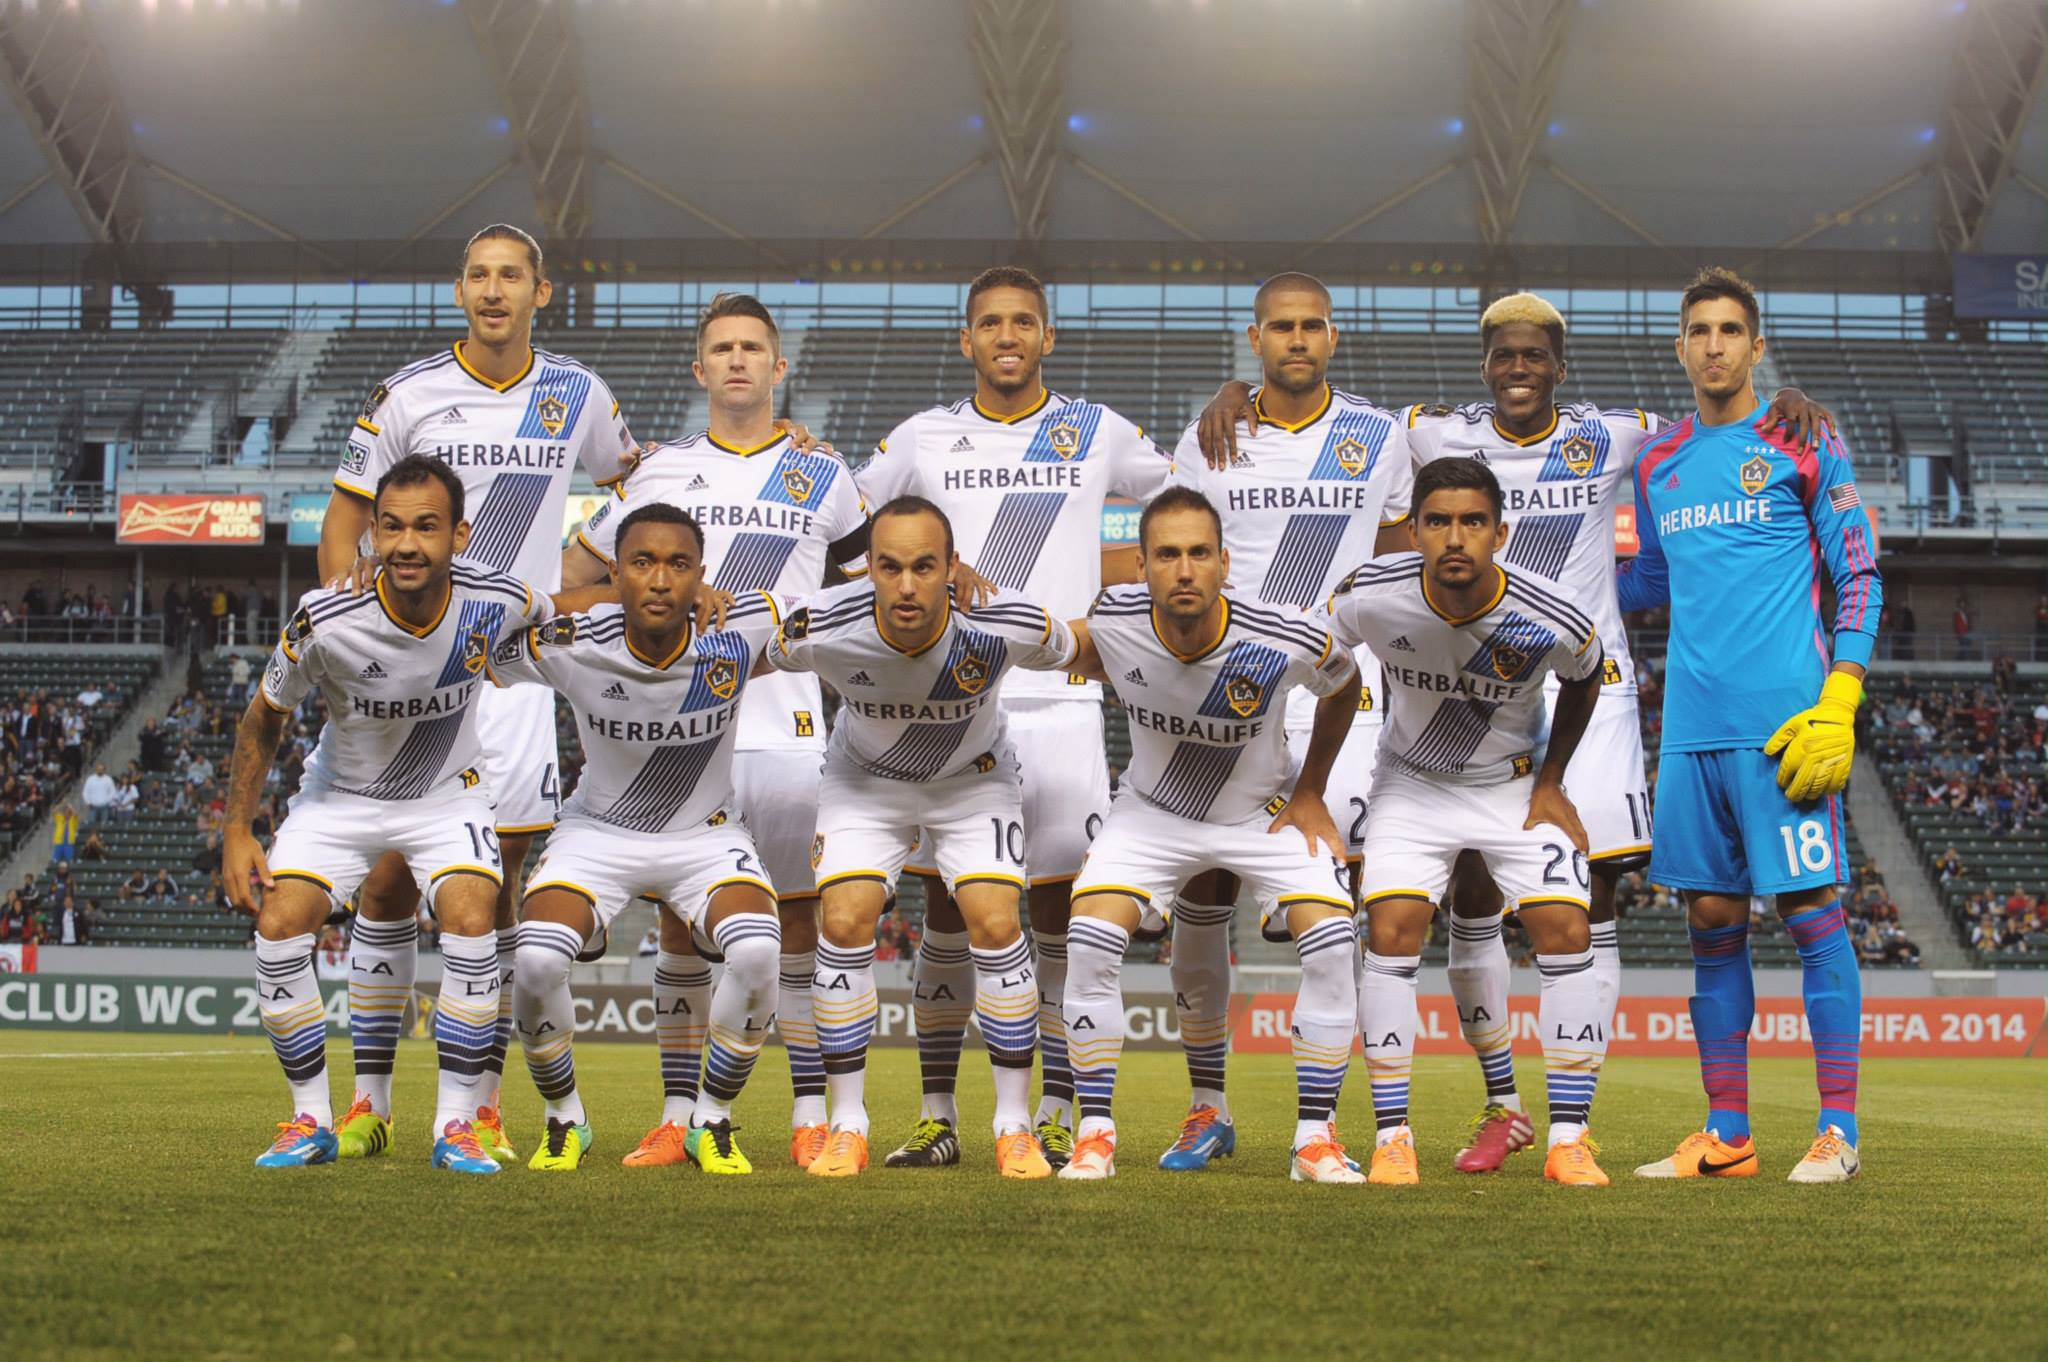 LA GALAXY TEAM - 2014.png